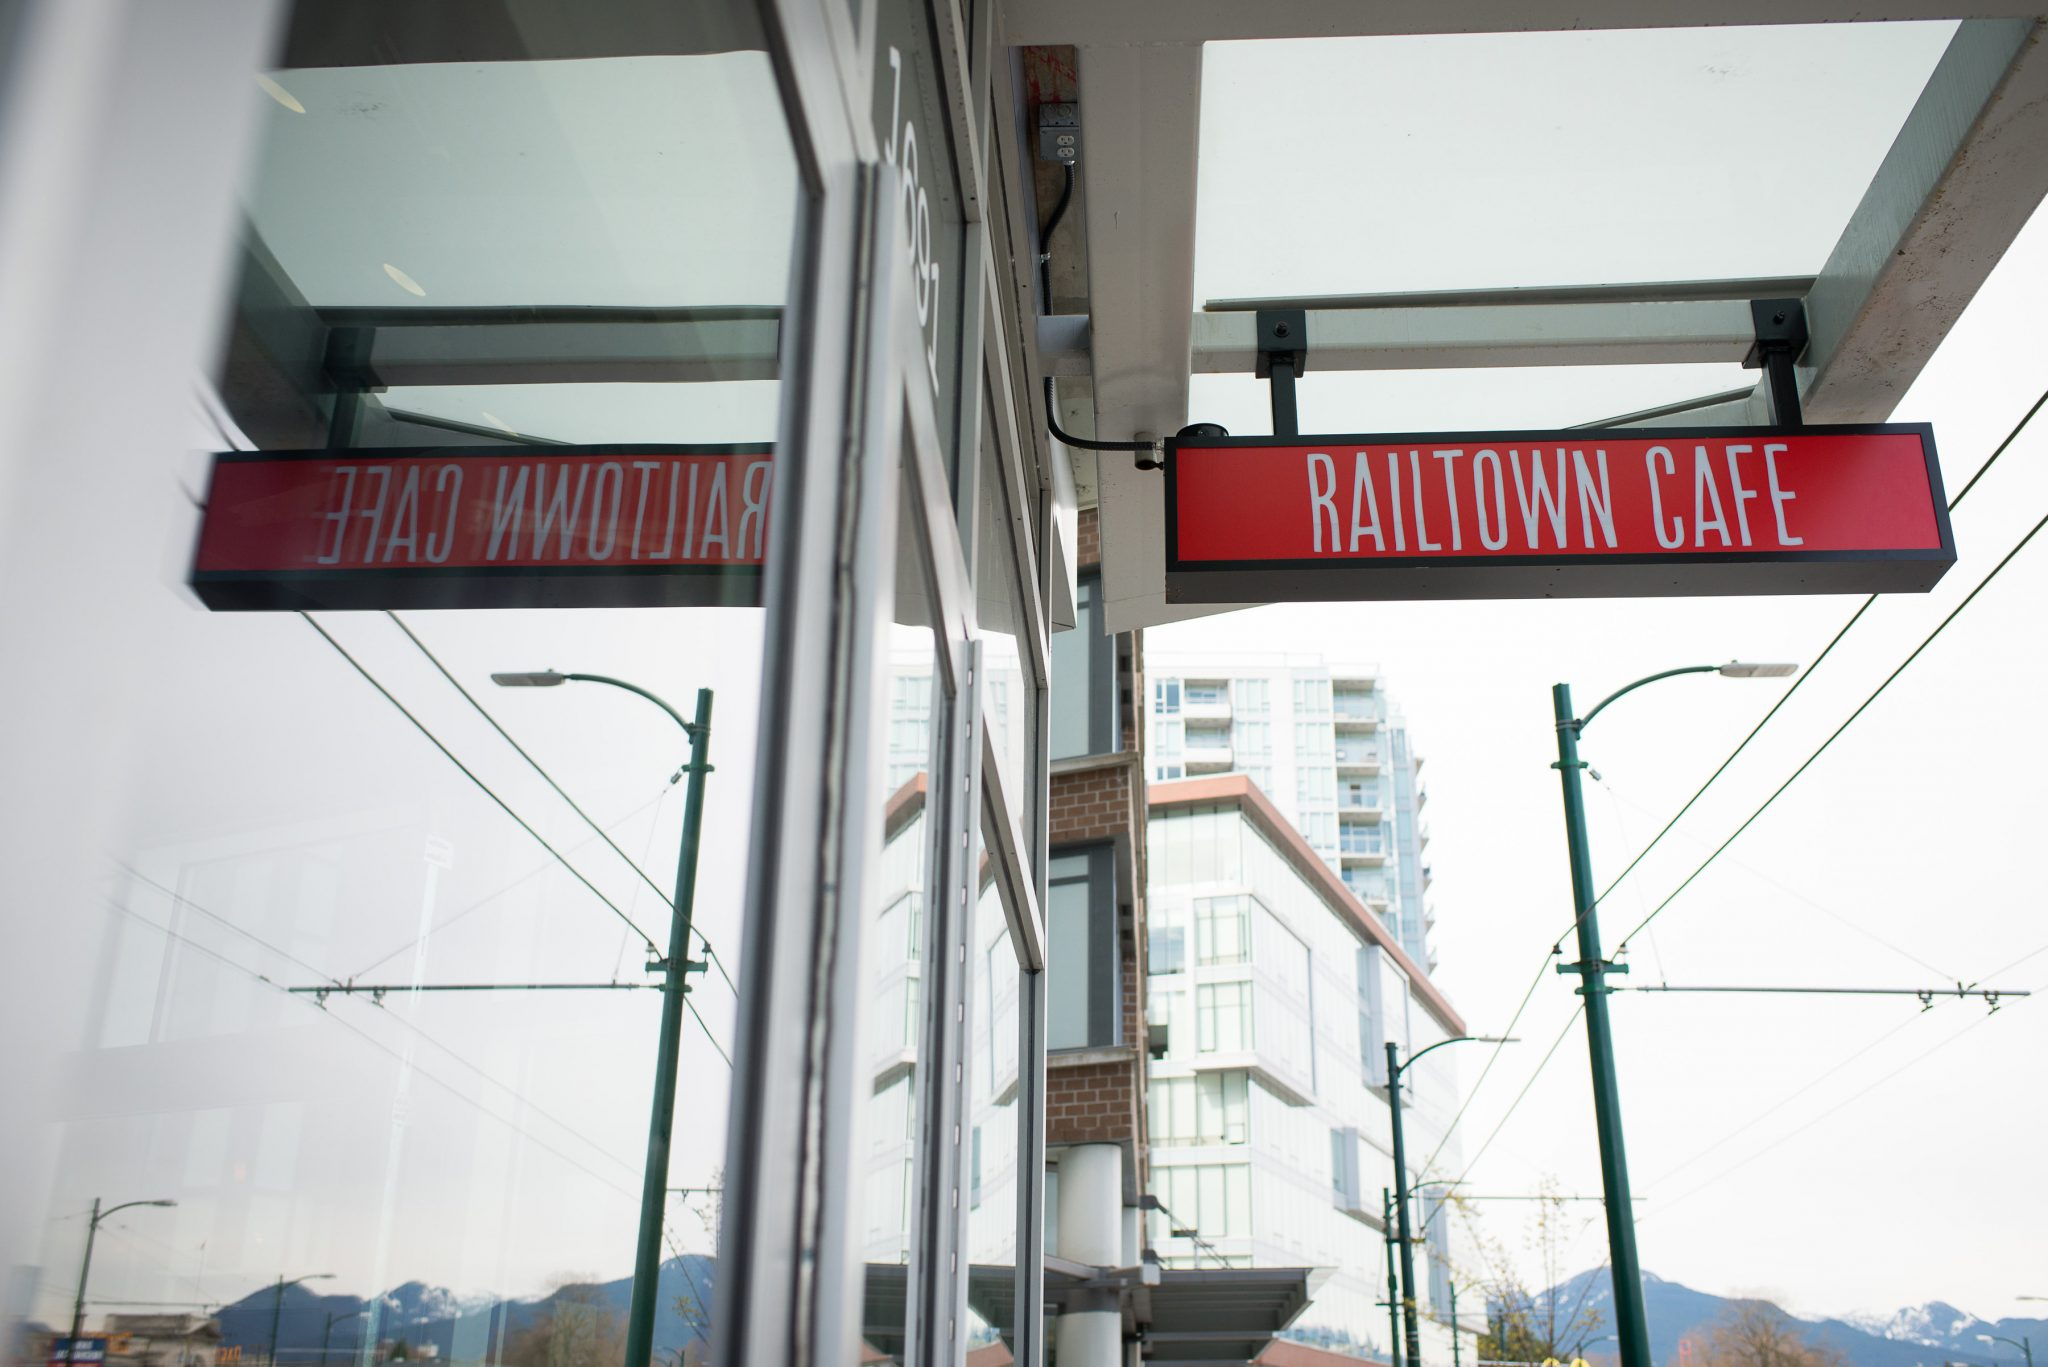 Pacific Solutions Contracting x Railtown Cafe